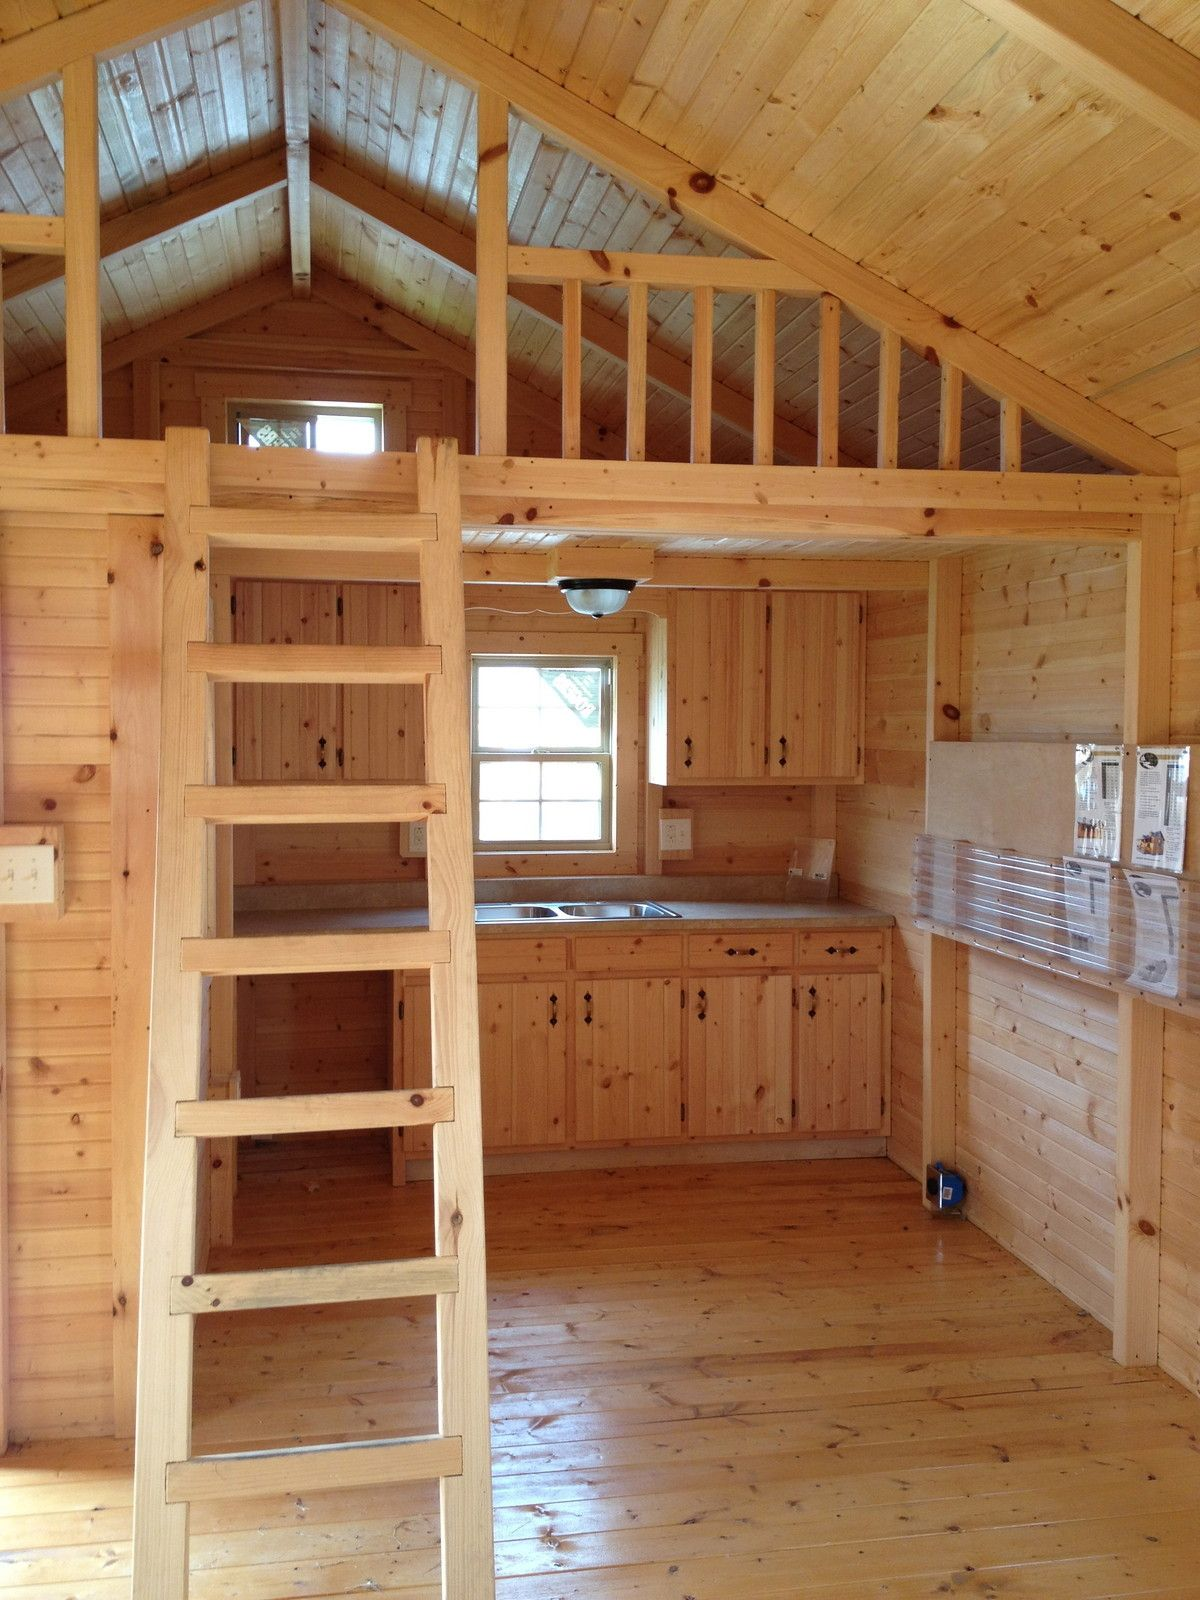 Tiny house ebay 14x24 cabin kit tiny homes pinterest for Building a small cabin with loft